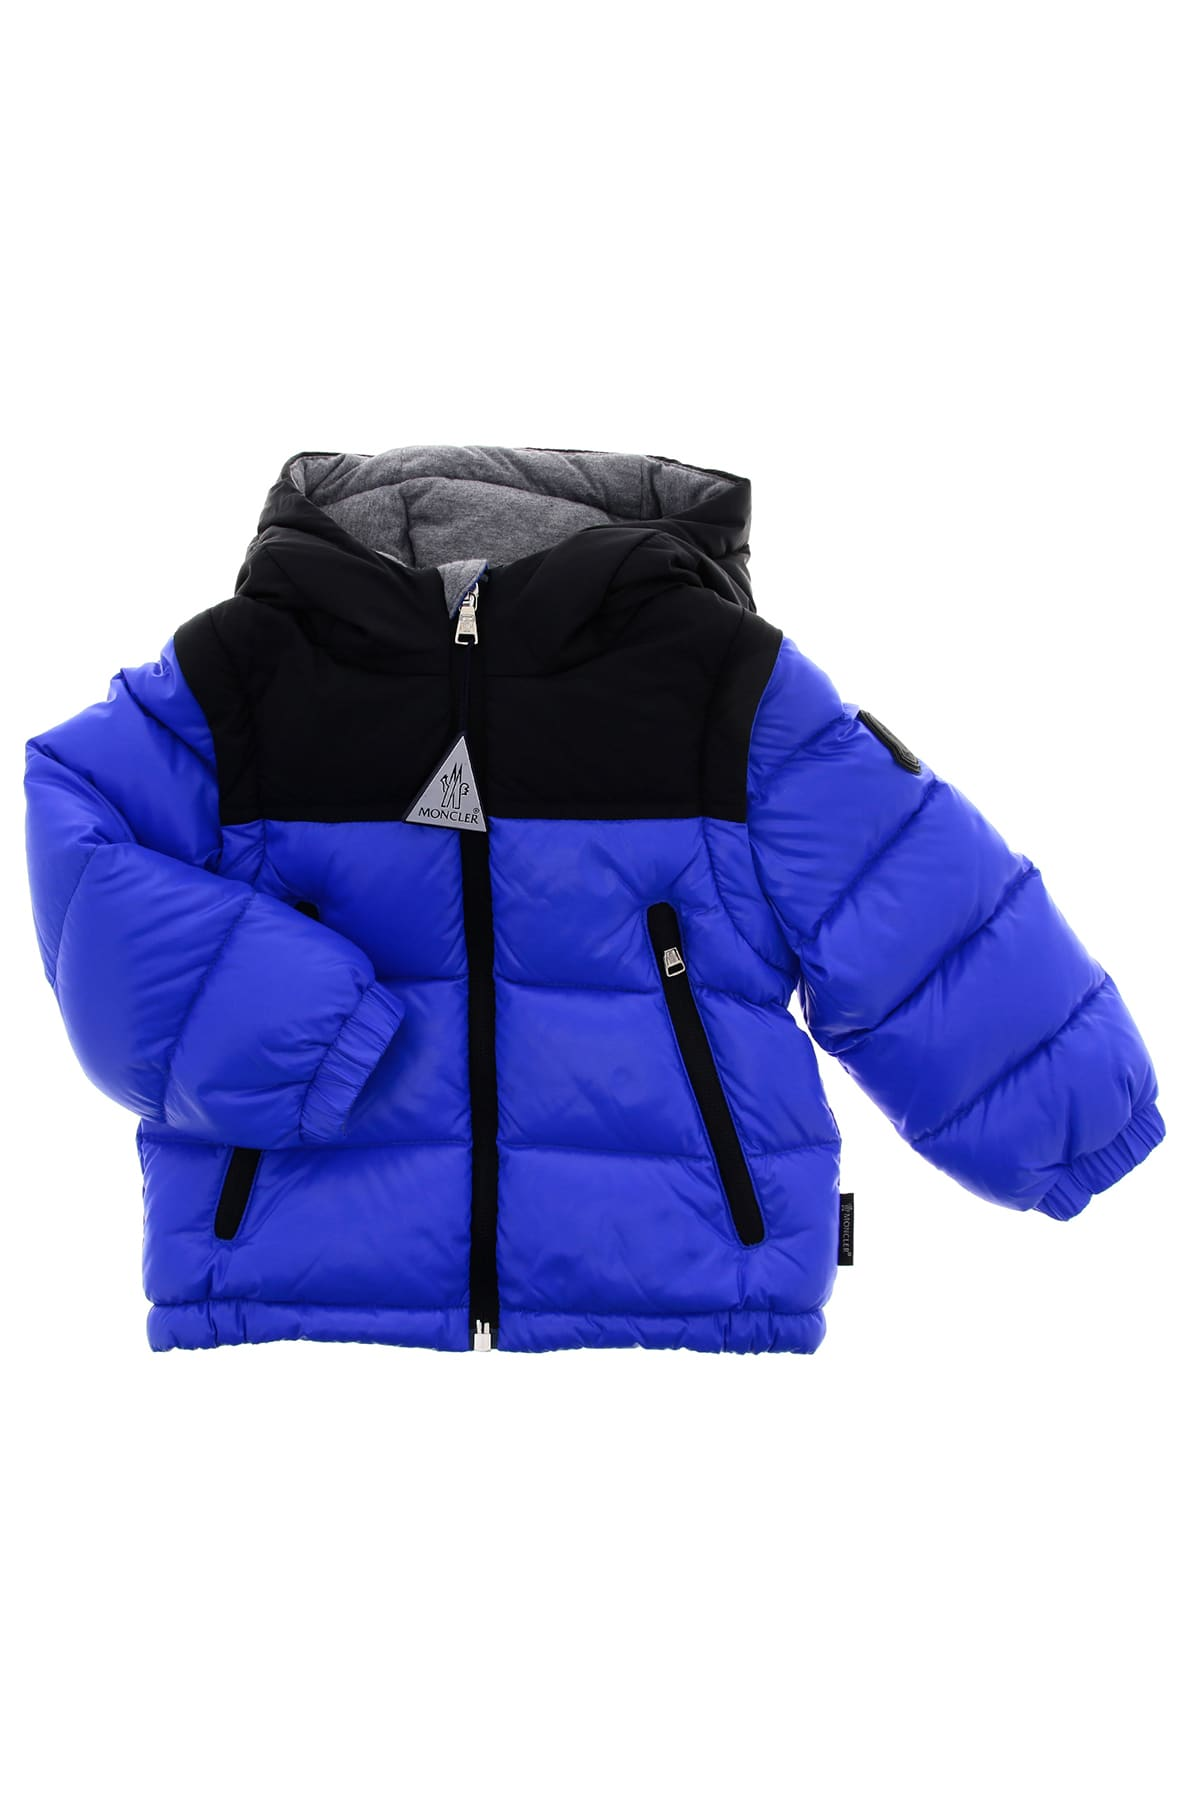 big sale 9b162 b436d Moncler Giubbotto Duc